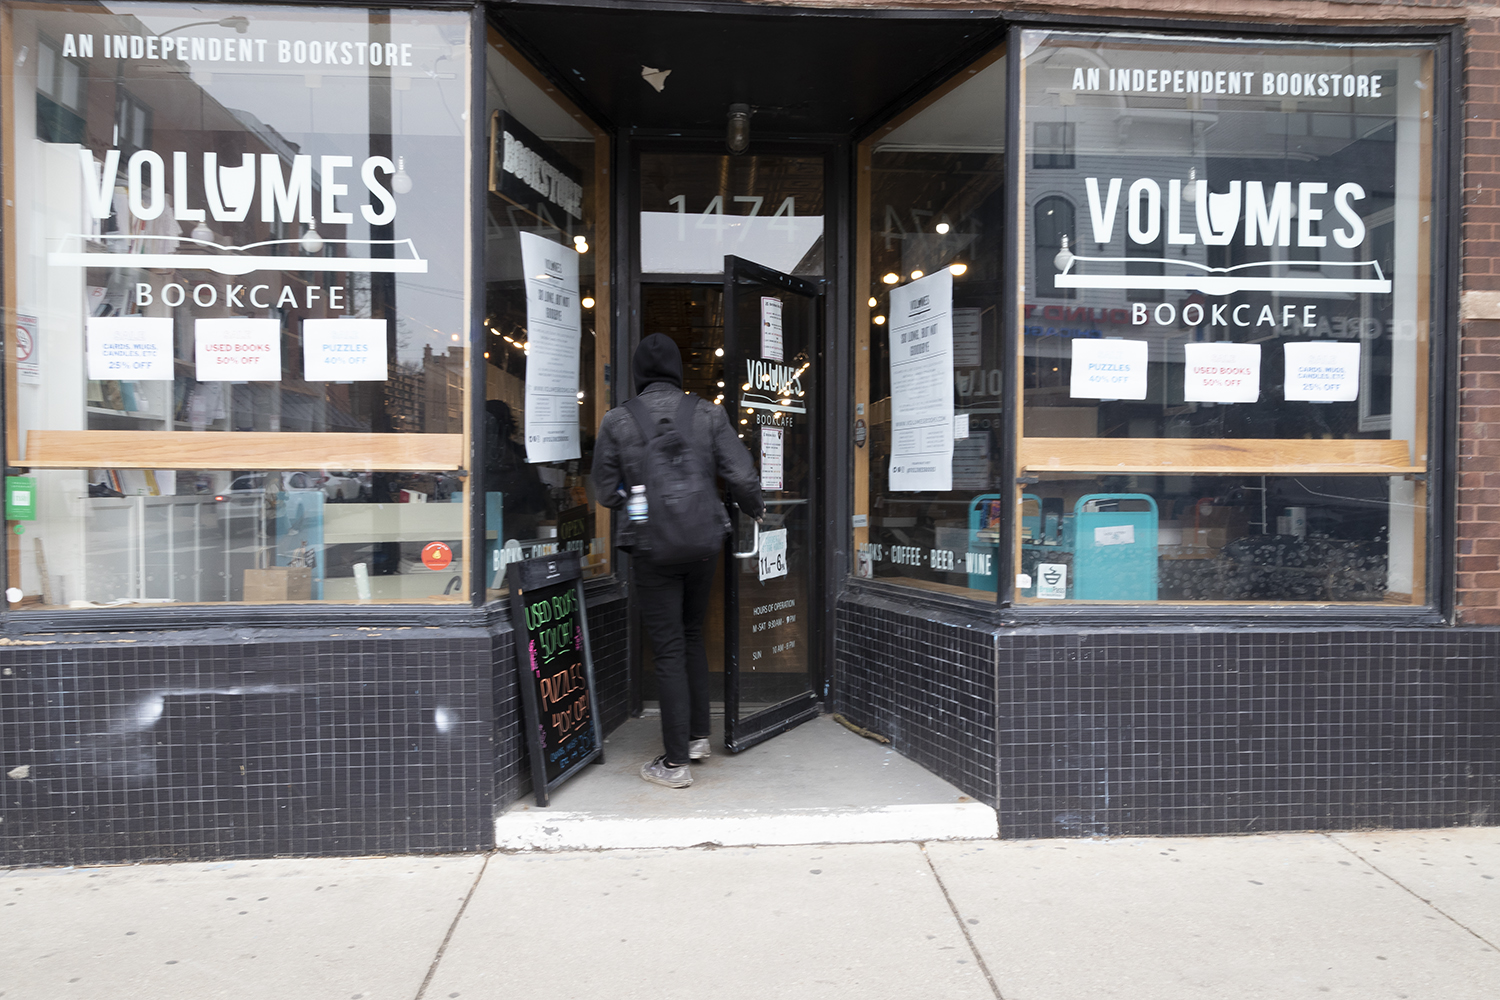 Volumes Bookcafe is closing its storefront in Wicker Park. Its last day will be Saturday, March 27, 2021, though the online store will continue. The owners hope to find a new location.